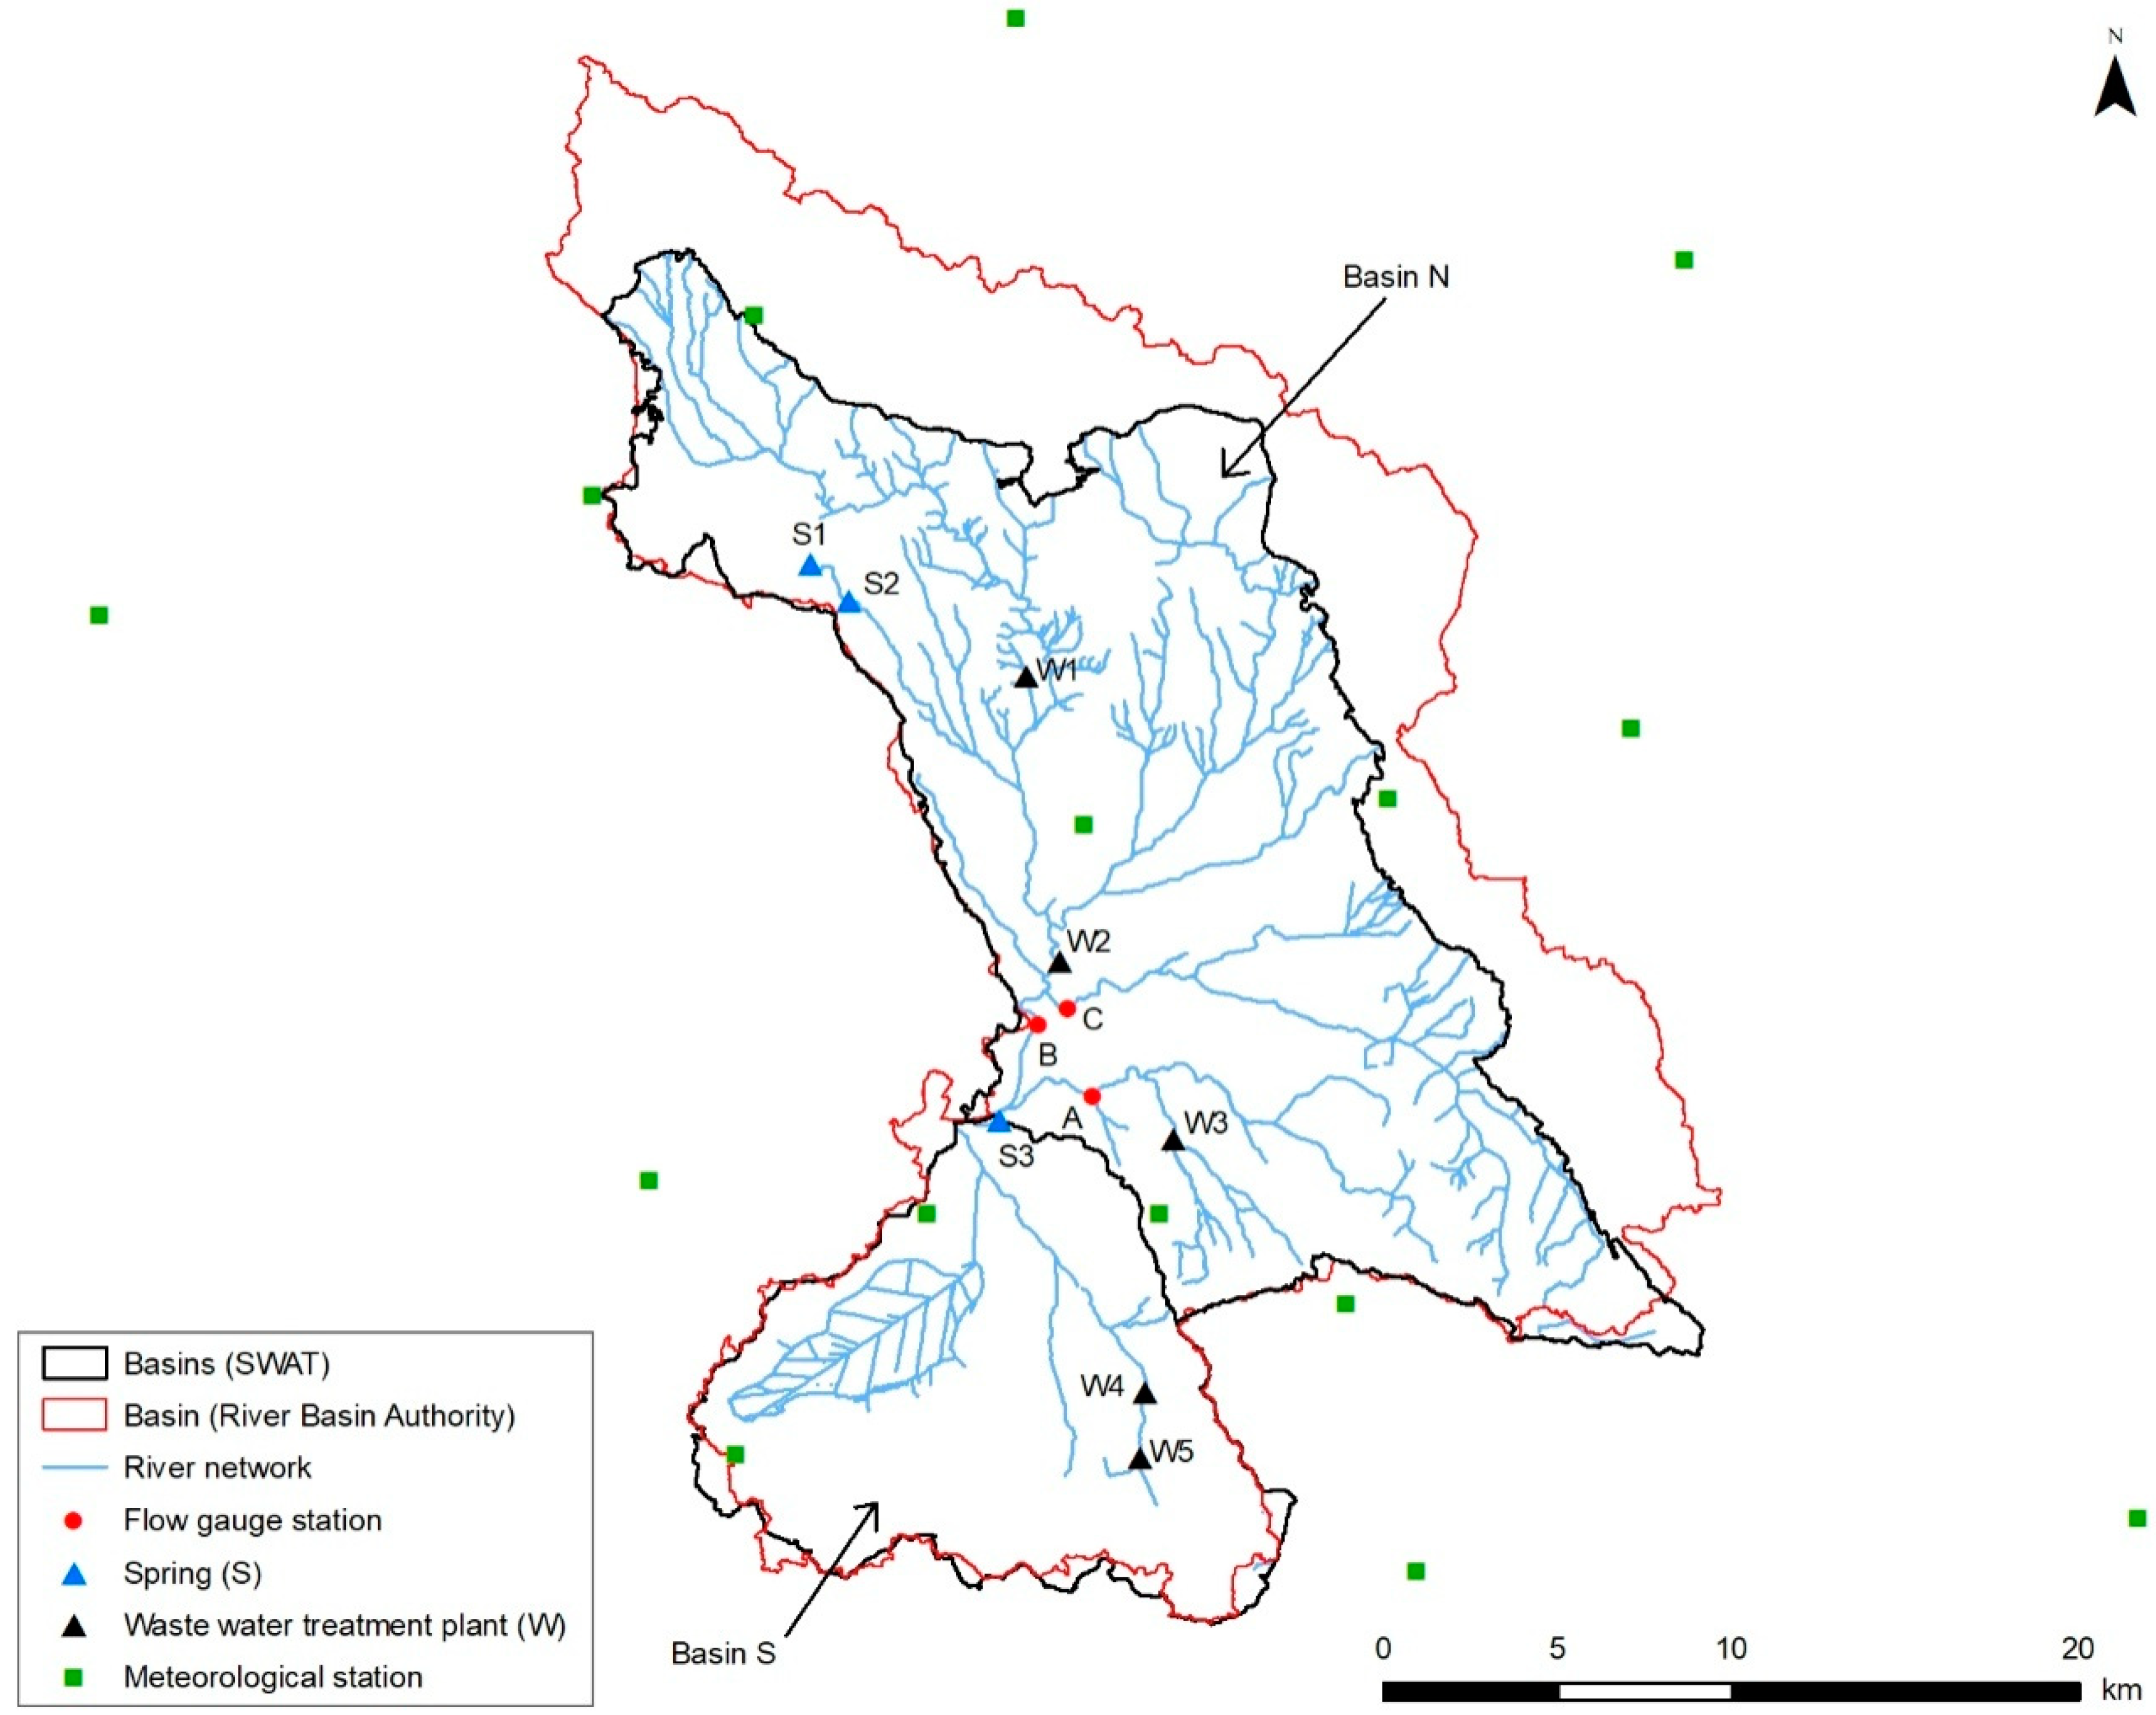 water free full text a spatial analysis to define data New Lincoln water 11 00267 g008